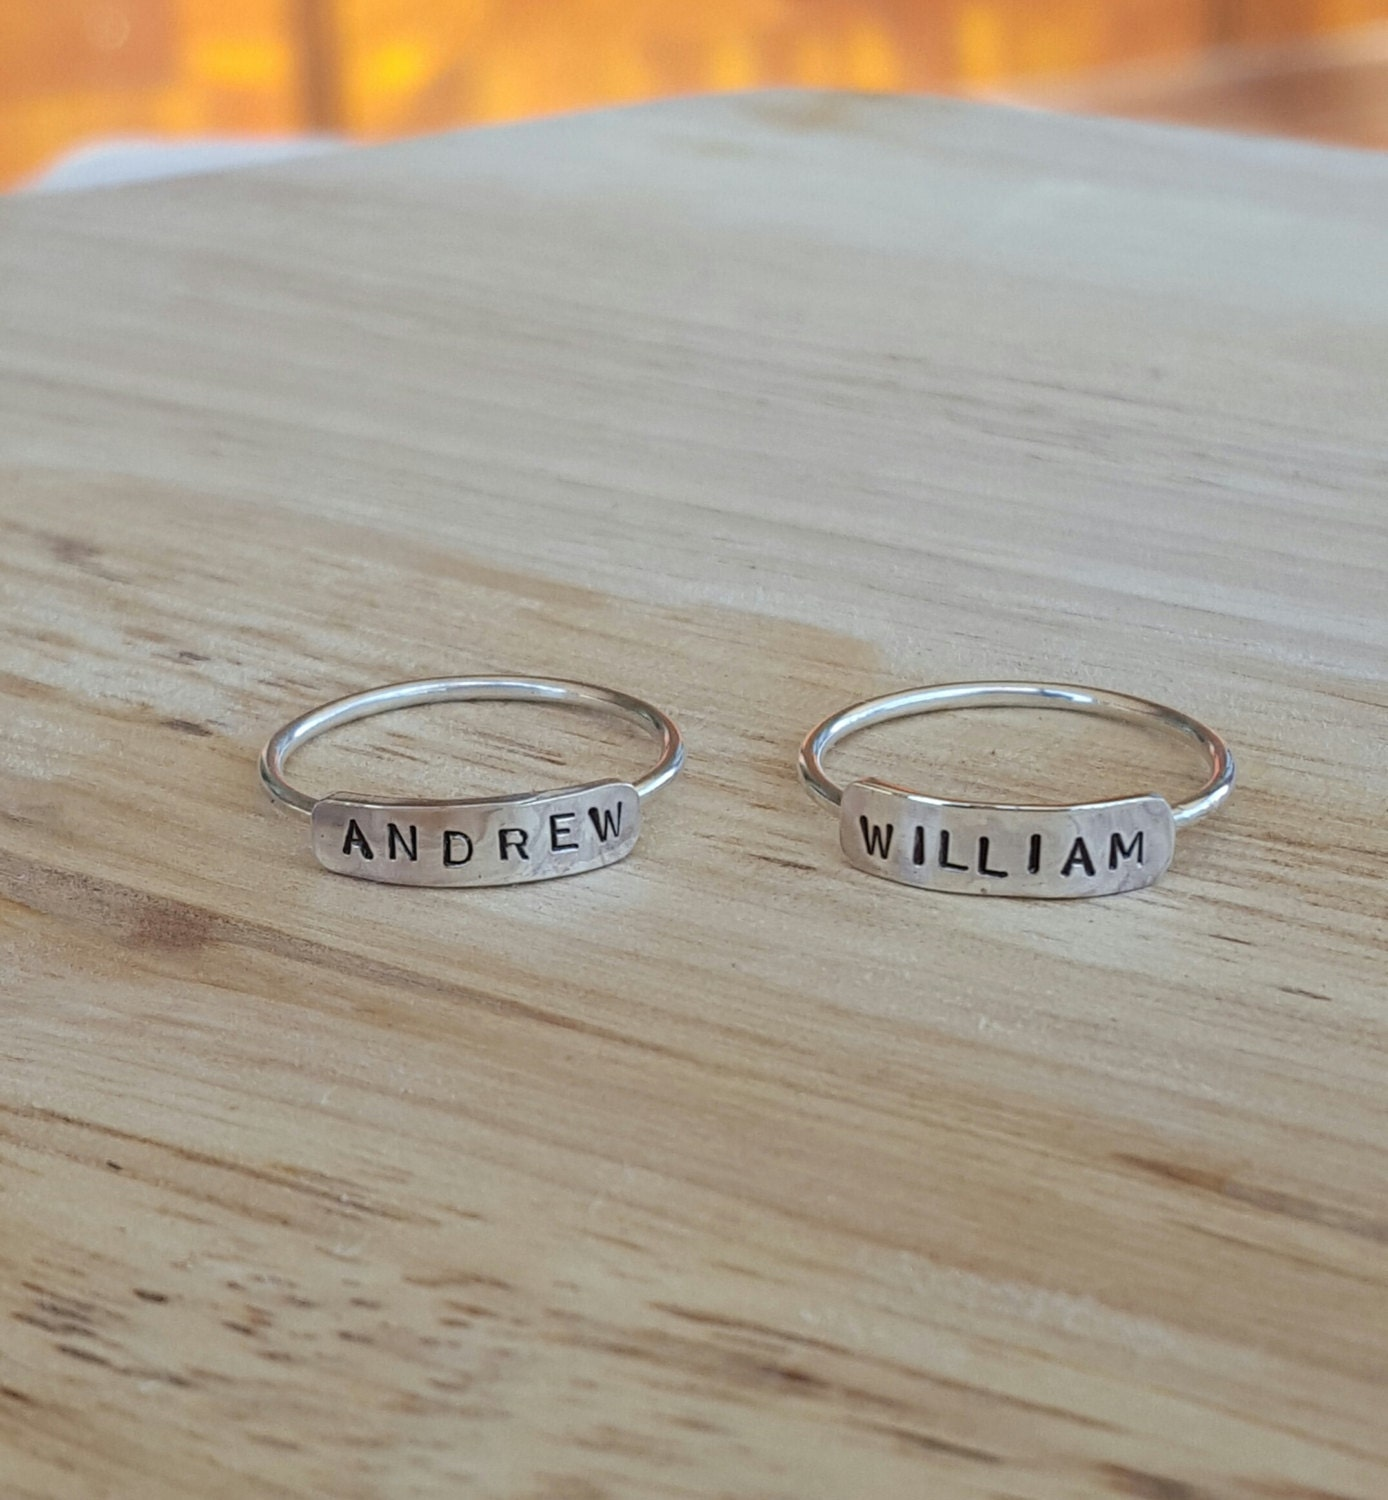 name ring custom personalized date sterling silver rings. Black Bedroom Furniture Sets. Home Design Ideas